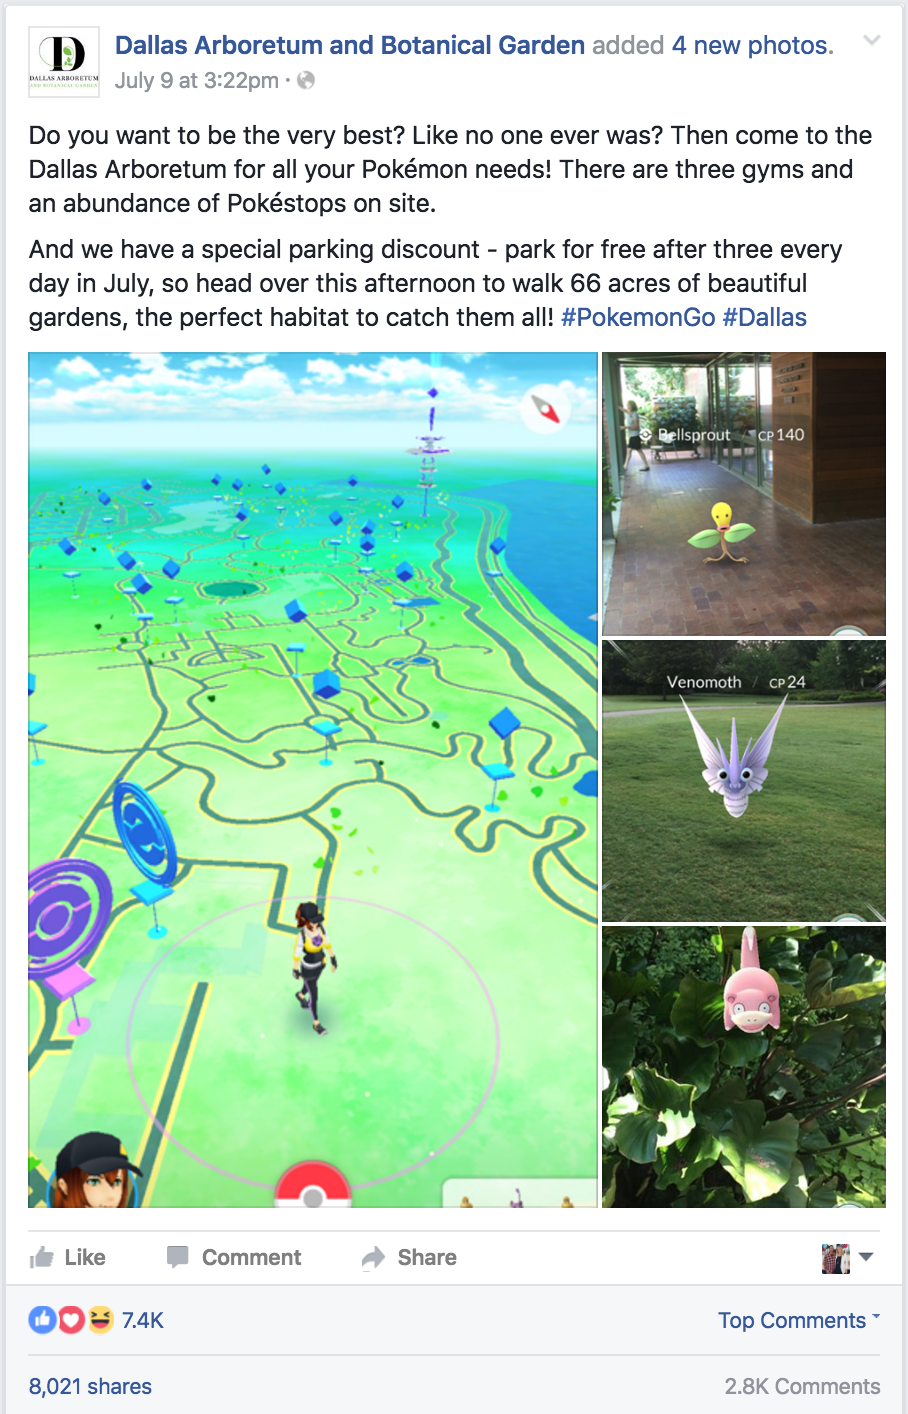 Dallas Botanical Gardens Pokemon GO marketing